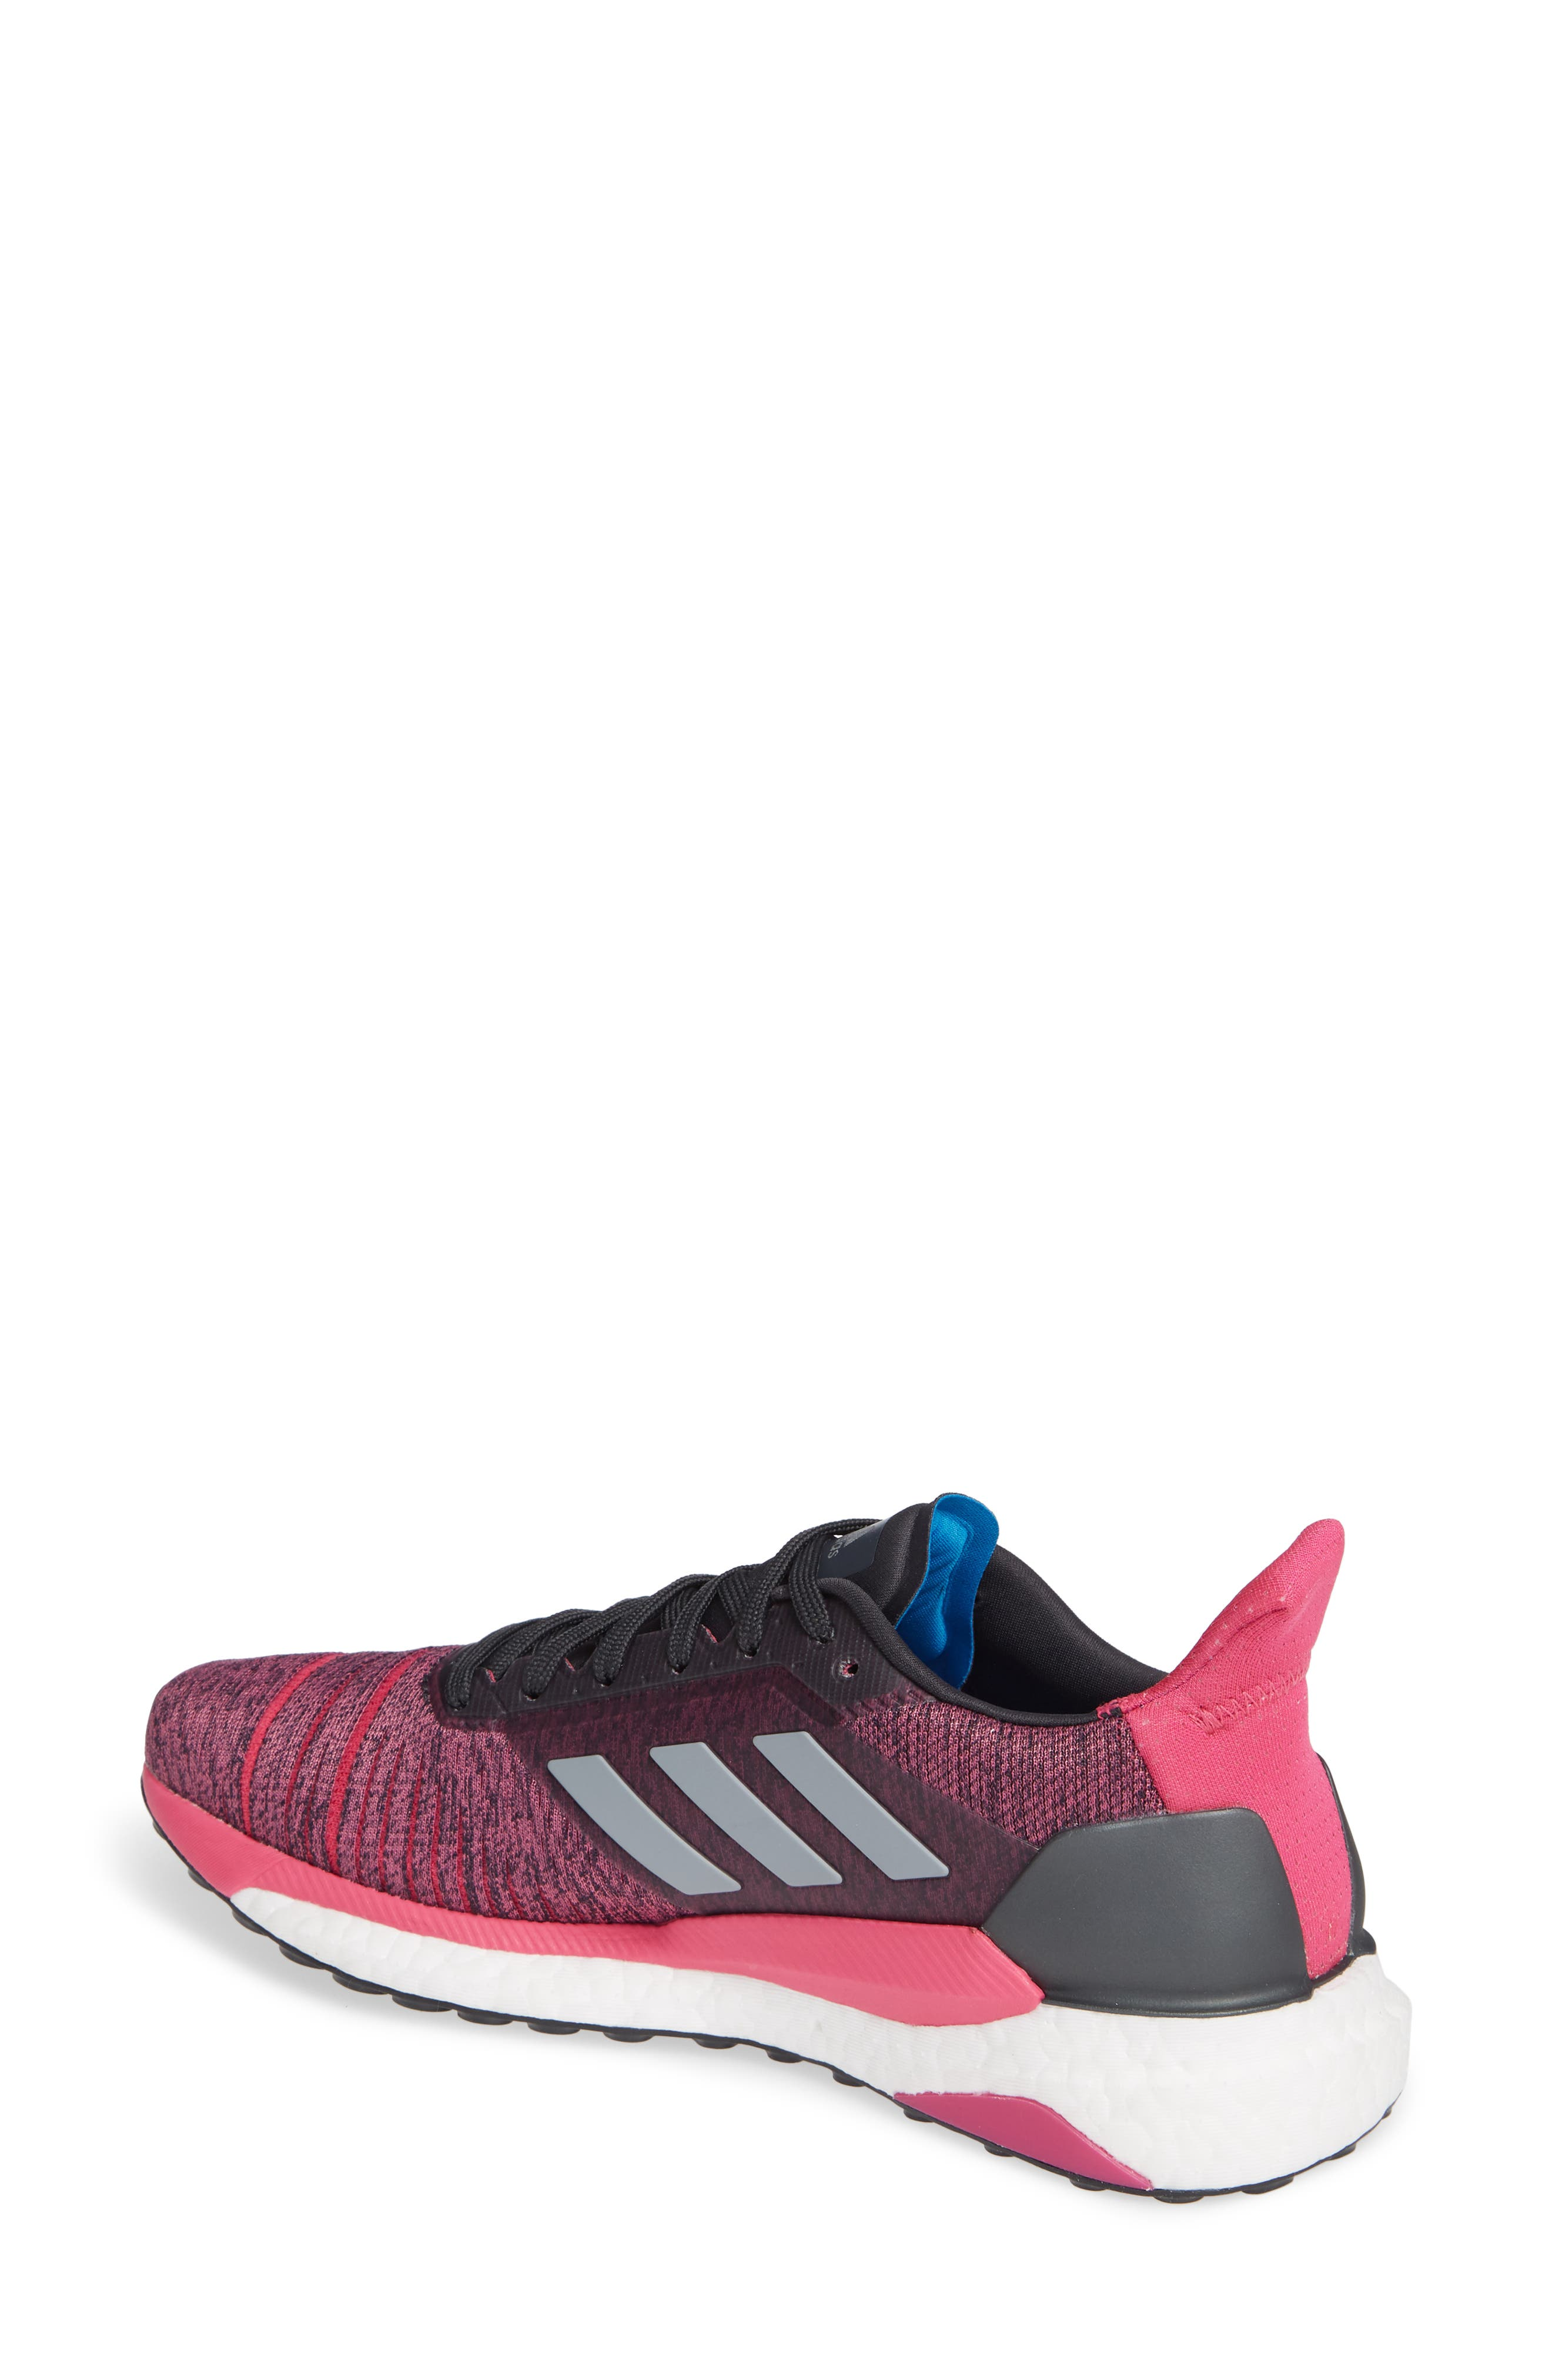 Solar Glide Running Shoe,                             Alternate thumbnail 2, color,                             CARBON/ GREY THREE/ MAGENTA